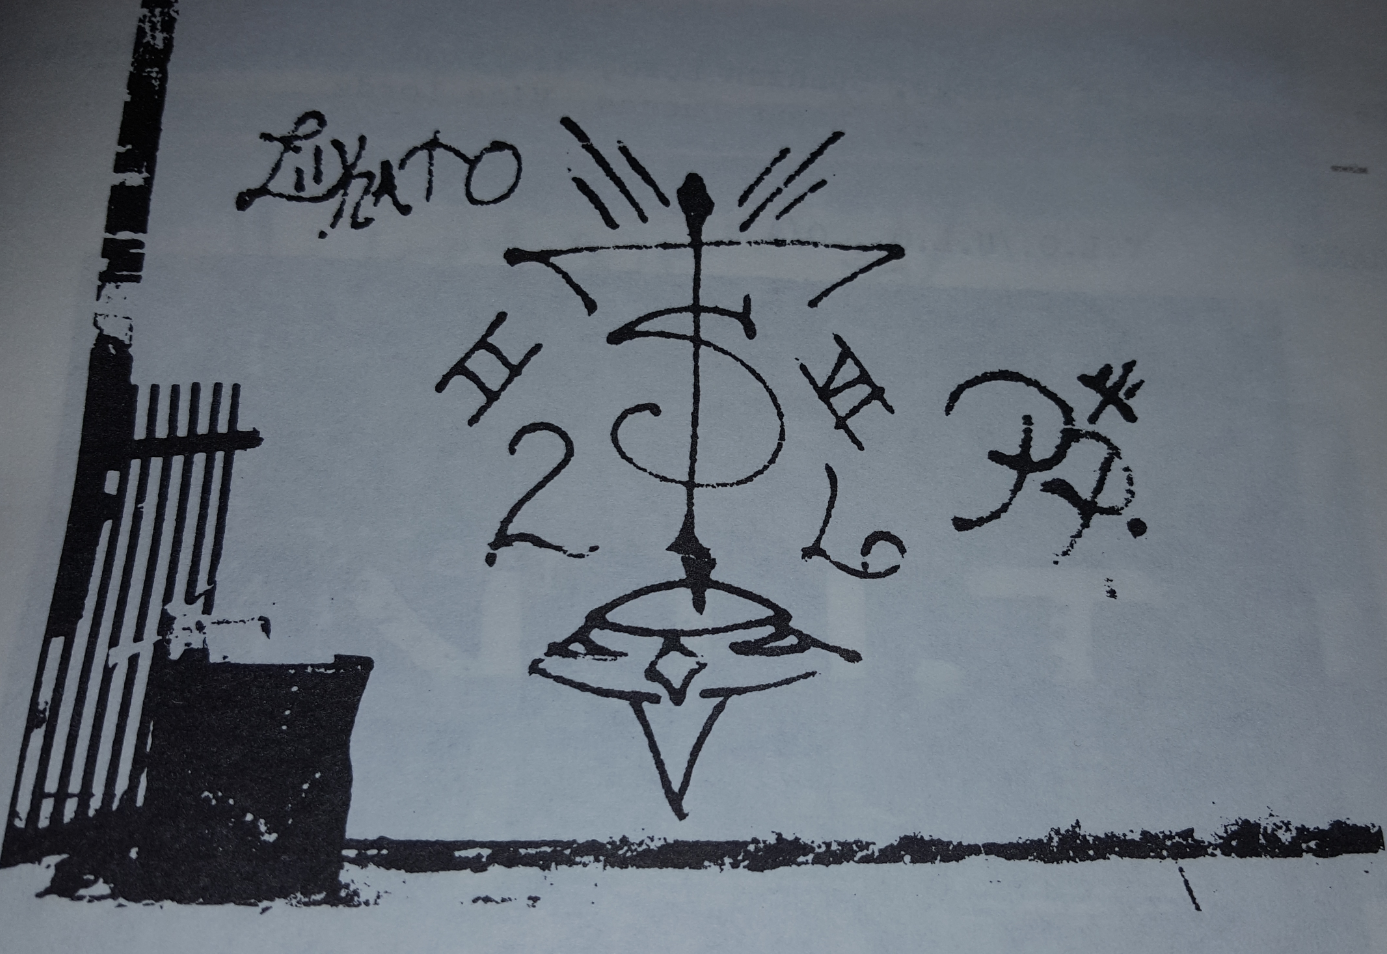 Gangster two six chicago gang history from a 1980s chicago police manual you can see the raised pitchfork from back when two six and satan disciples were allies buycottarizona Choice Image